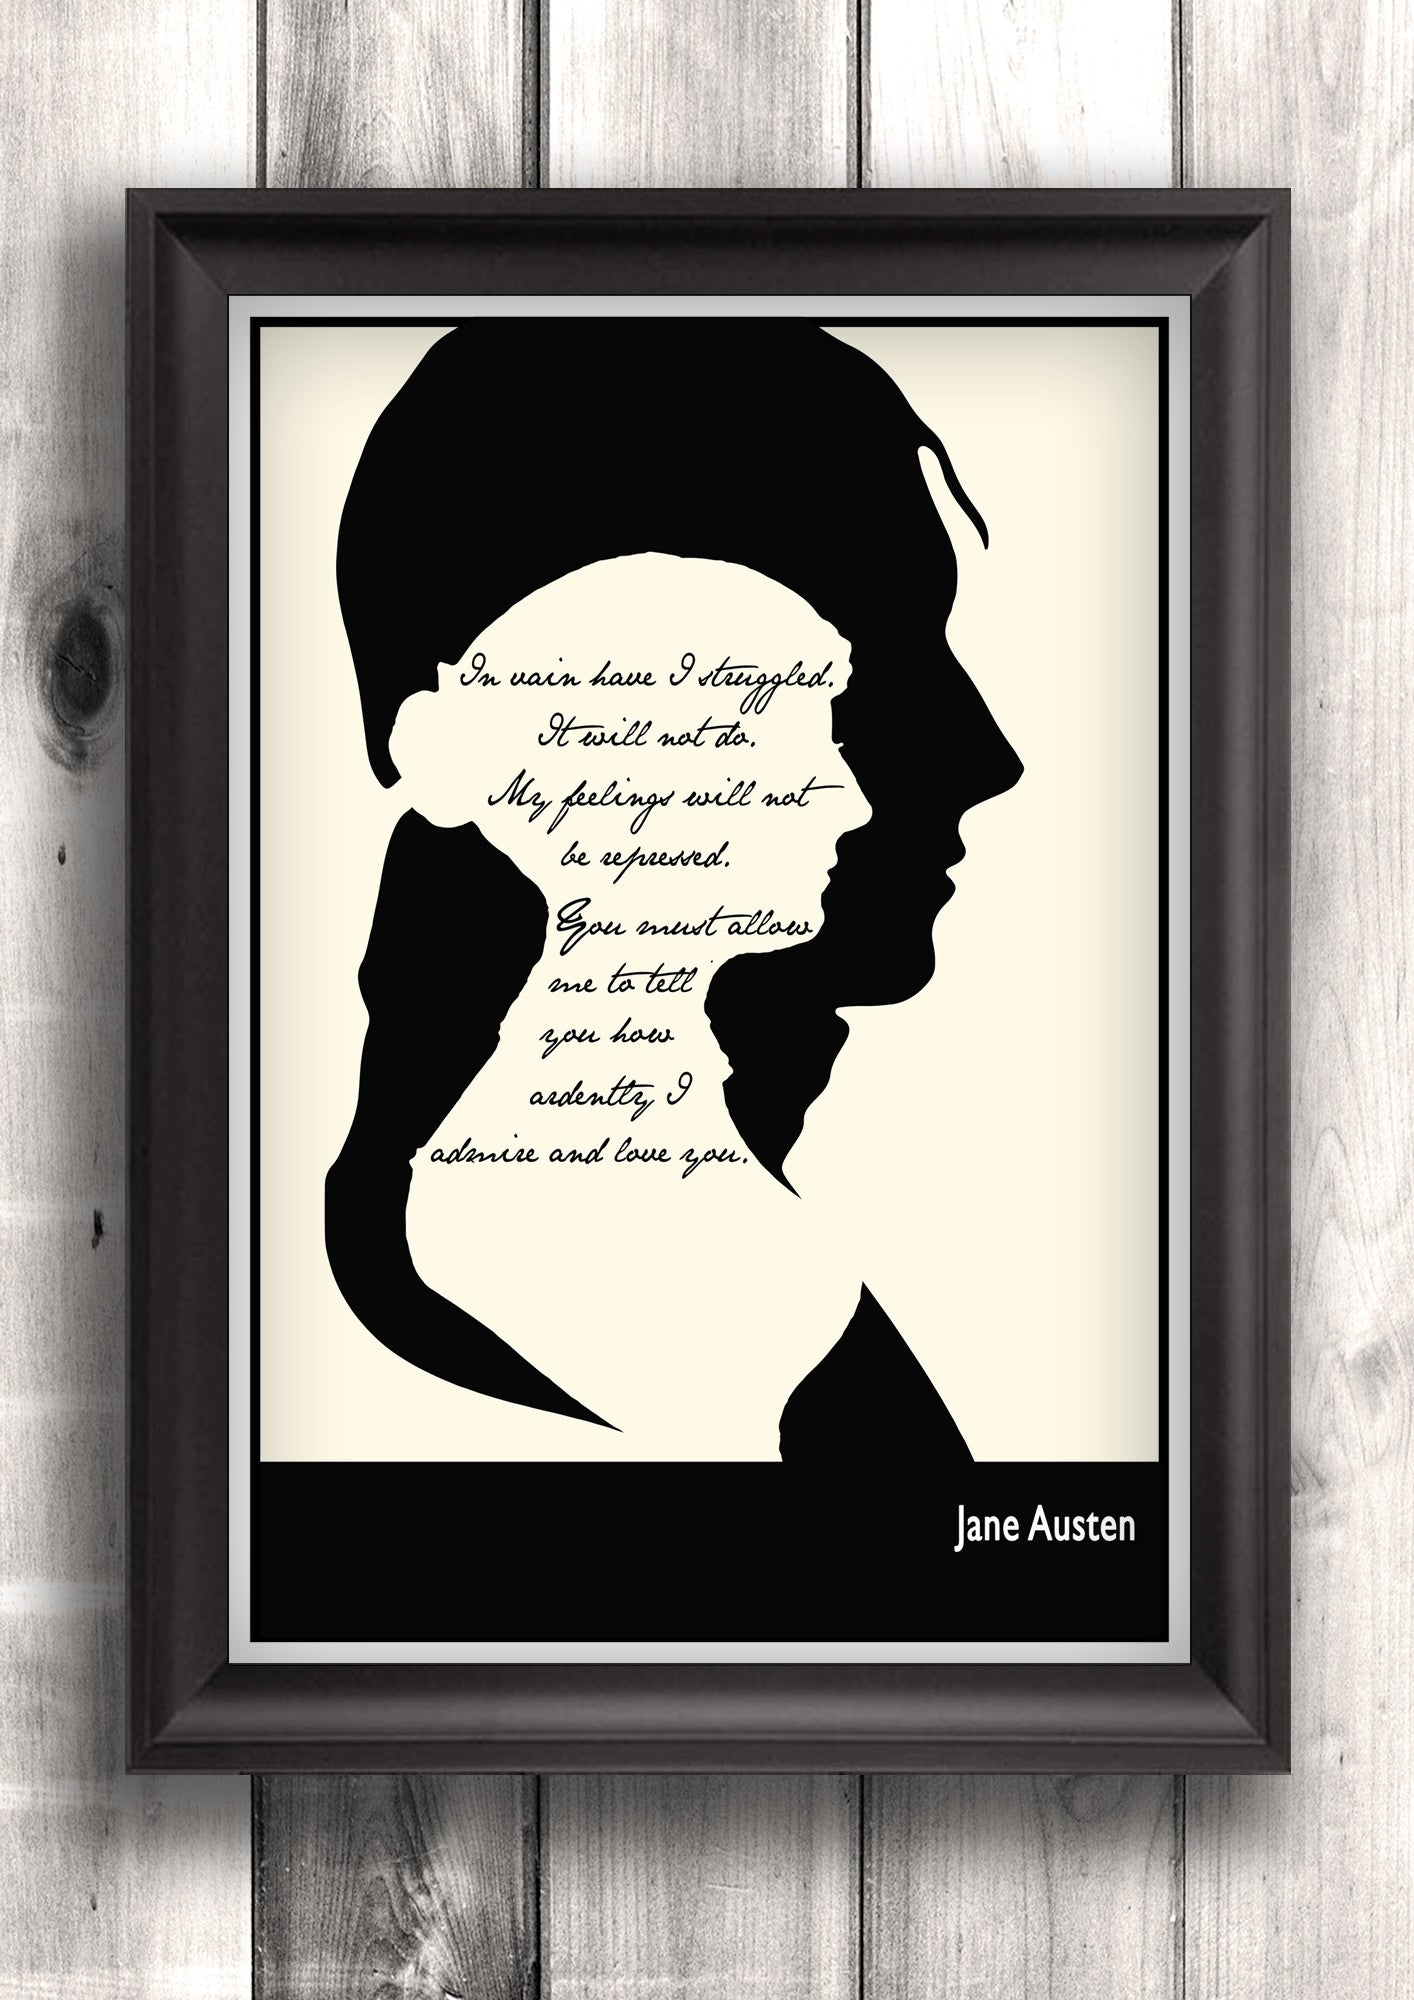 Literary Art - Jane Austen Quote, Darcy's Proposal Art Poster, Minimalist Black and White - Fine art letterpress print